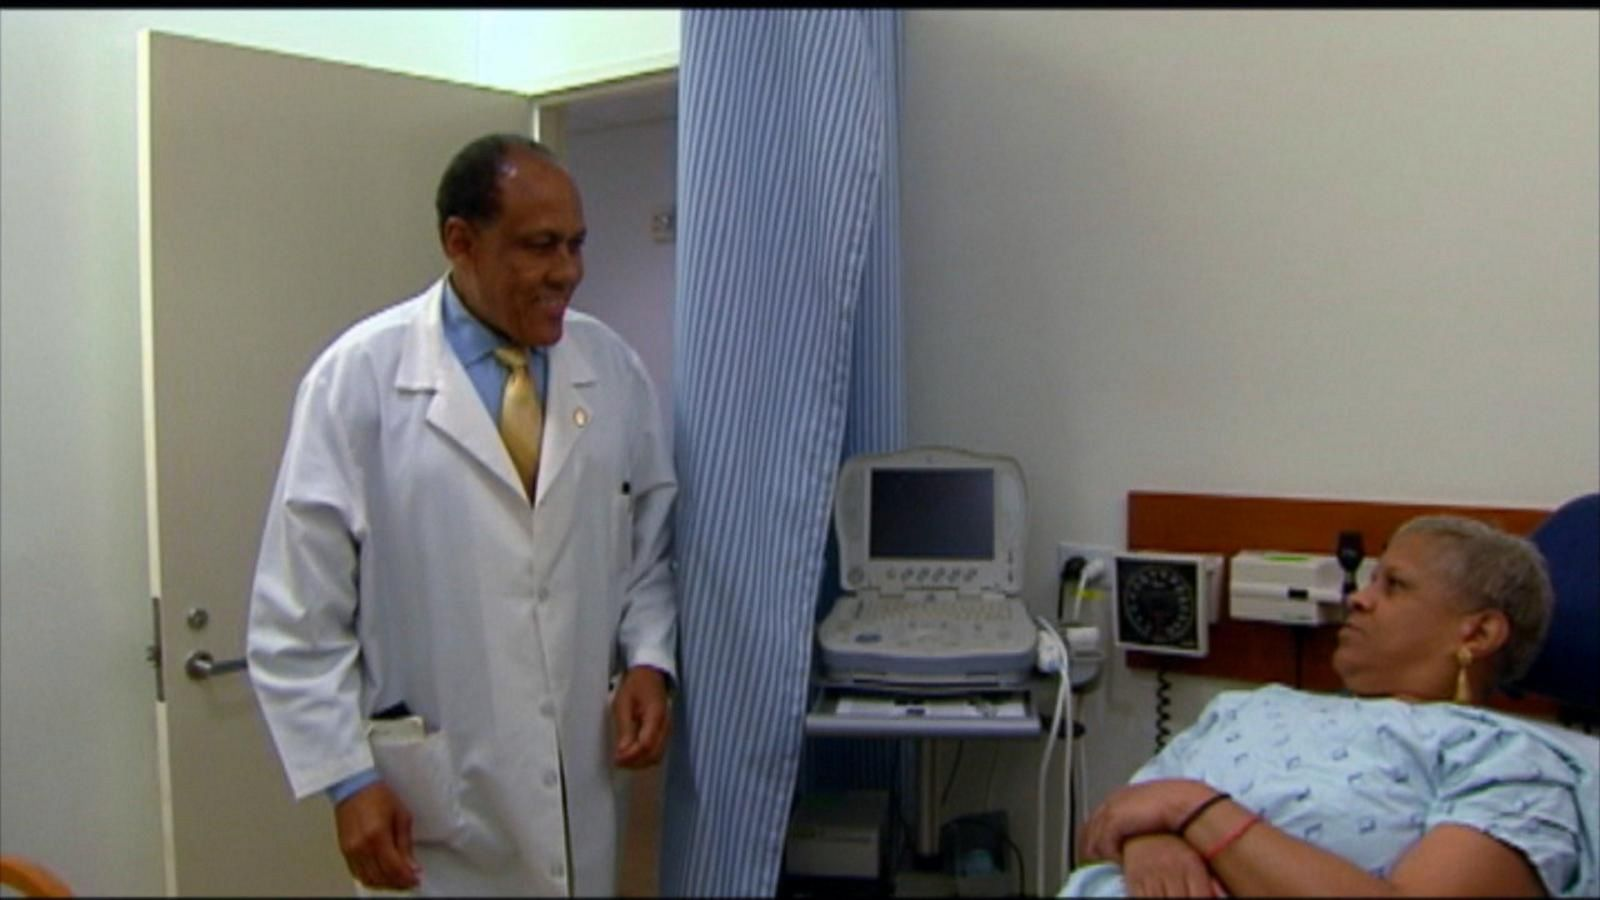 VIDEO: Inside the Ralph Lauren Center for Cancer Care and Prevention